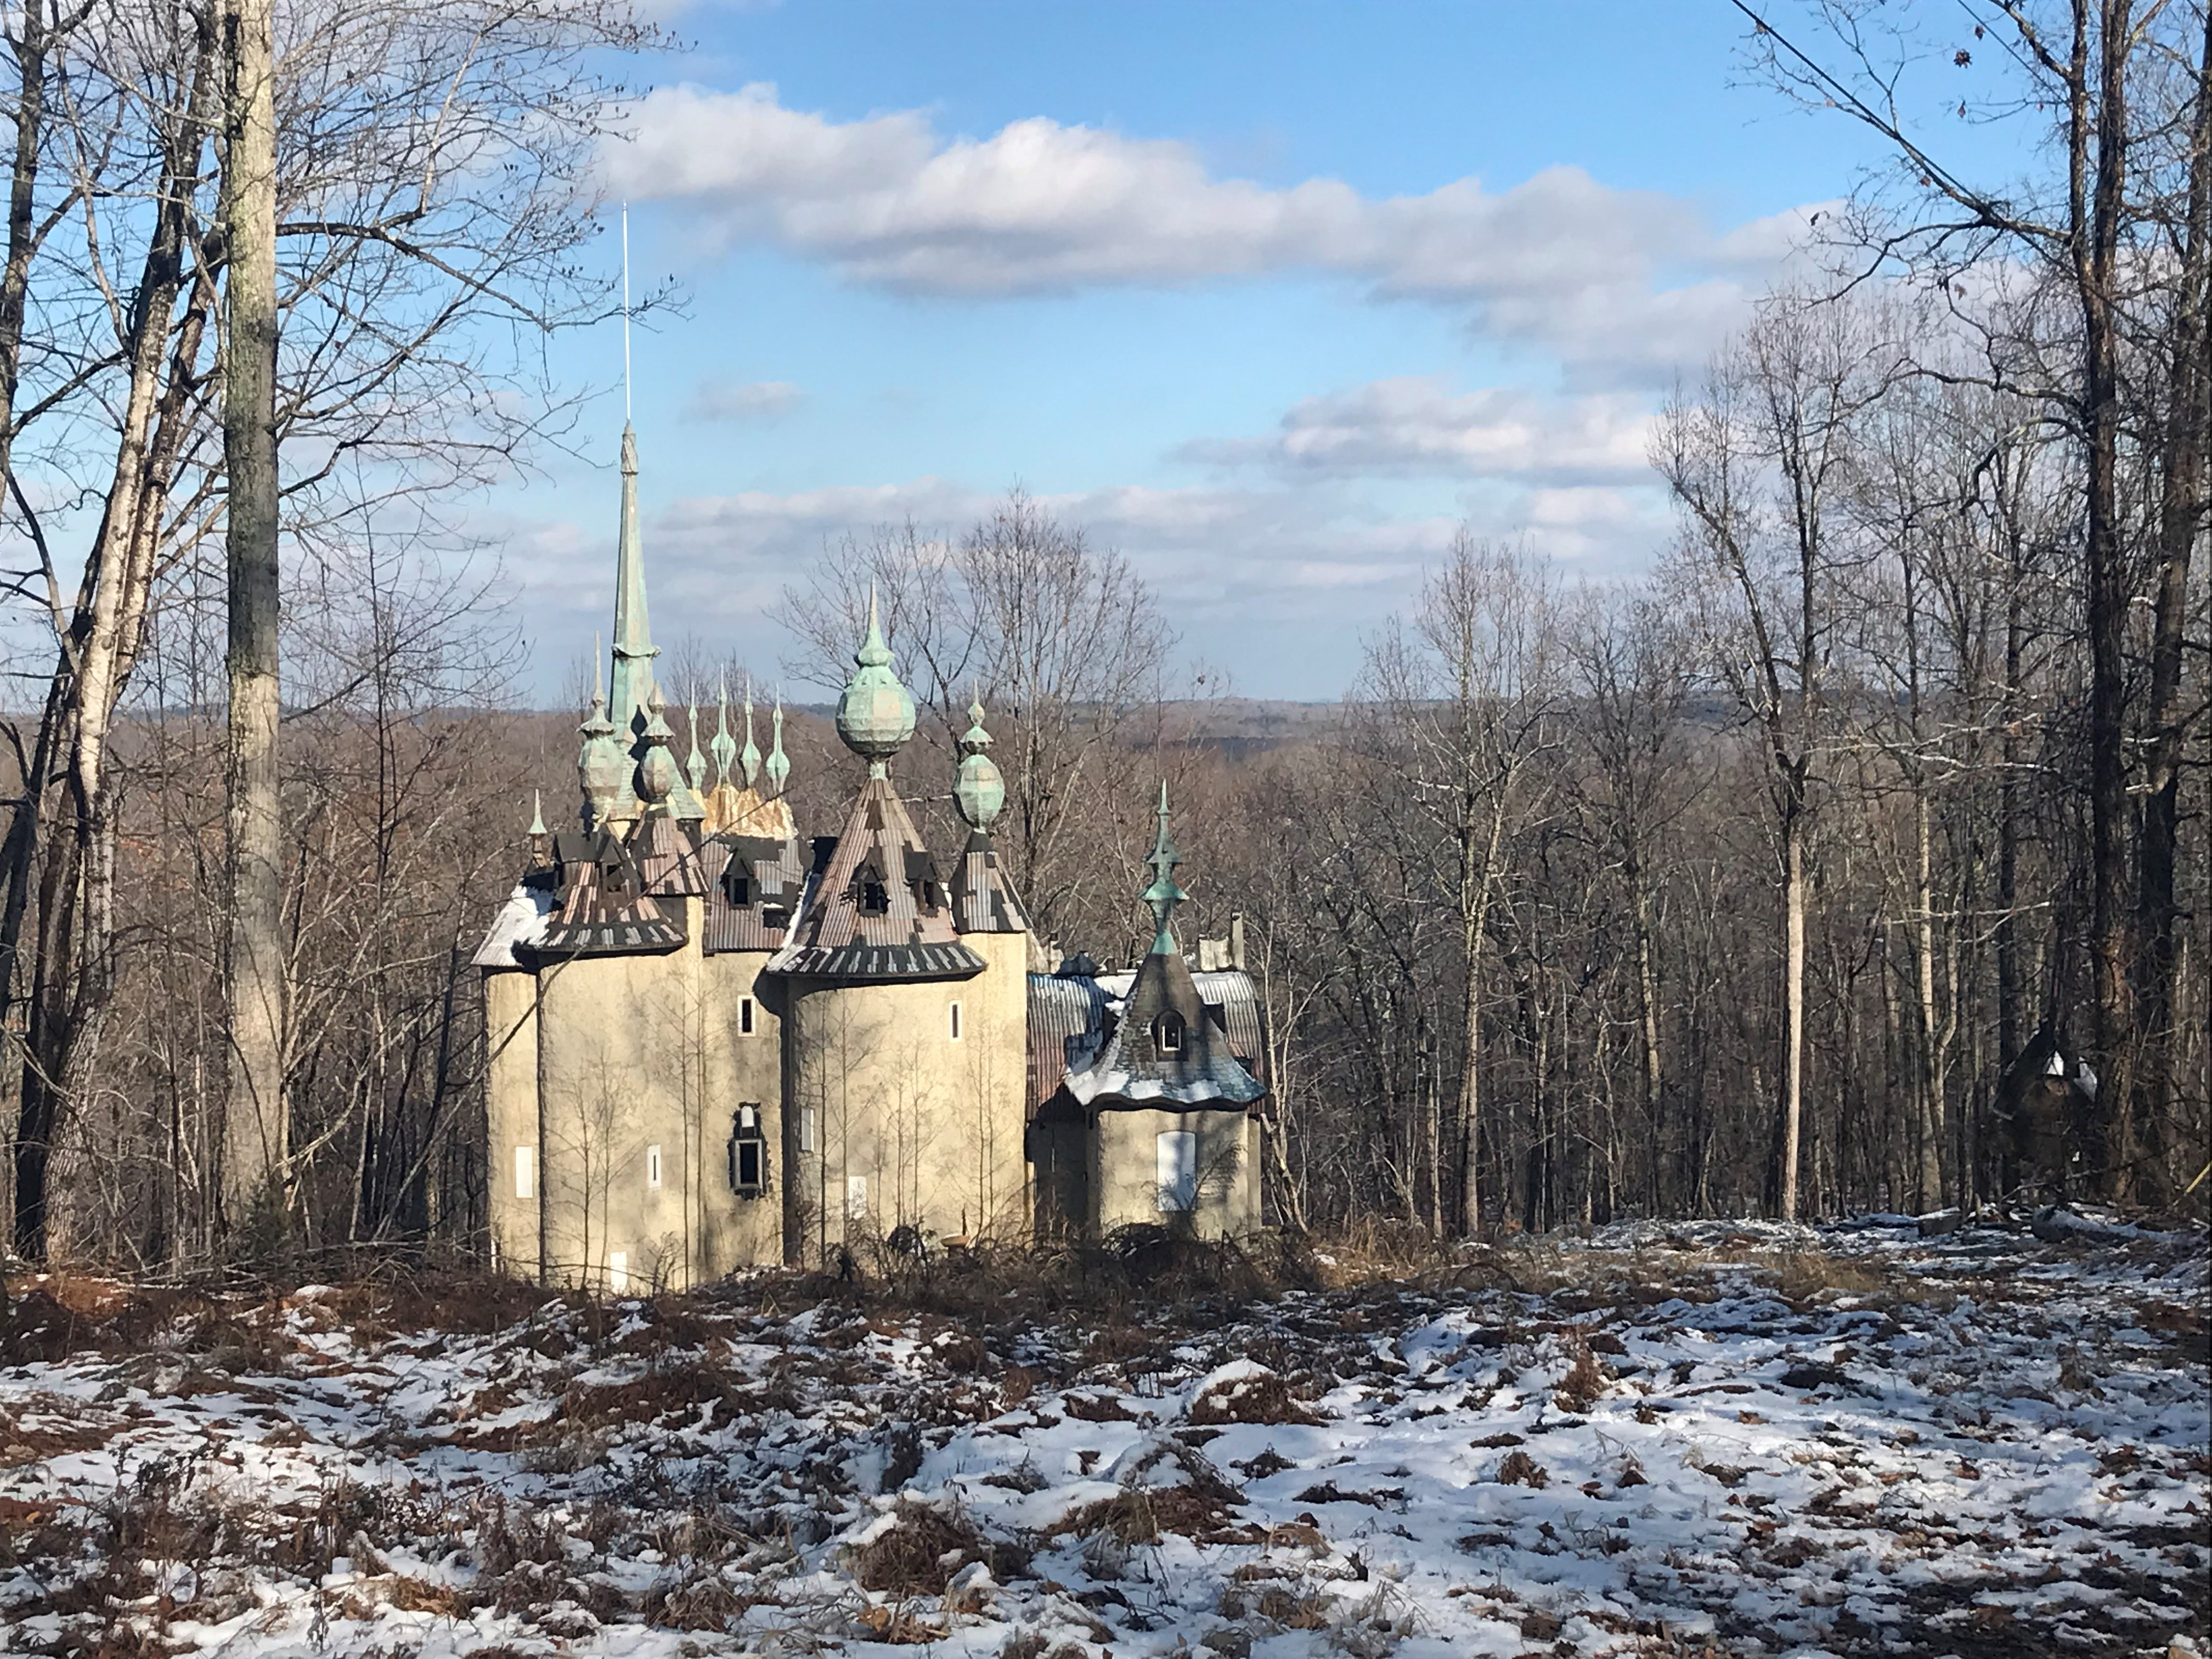 <div class='meta'><div class='origin-logo' data-origin='none'></div><span class='caption-text' data-credit='ABC11 Reporter Elaina Athans'>It's a dramatic home that offers a taste of Russia in Rougemont. There are turrets. Pinnacles and spires pierce through the sky.</span></div>